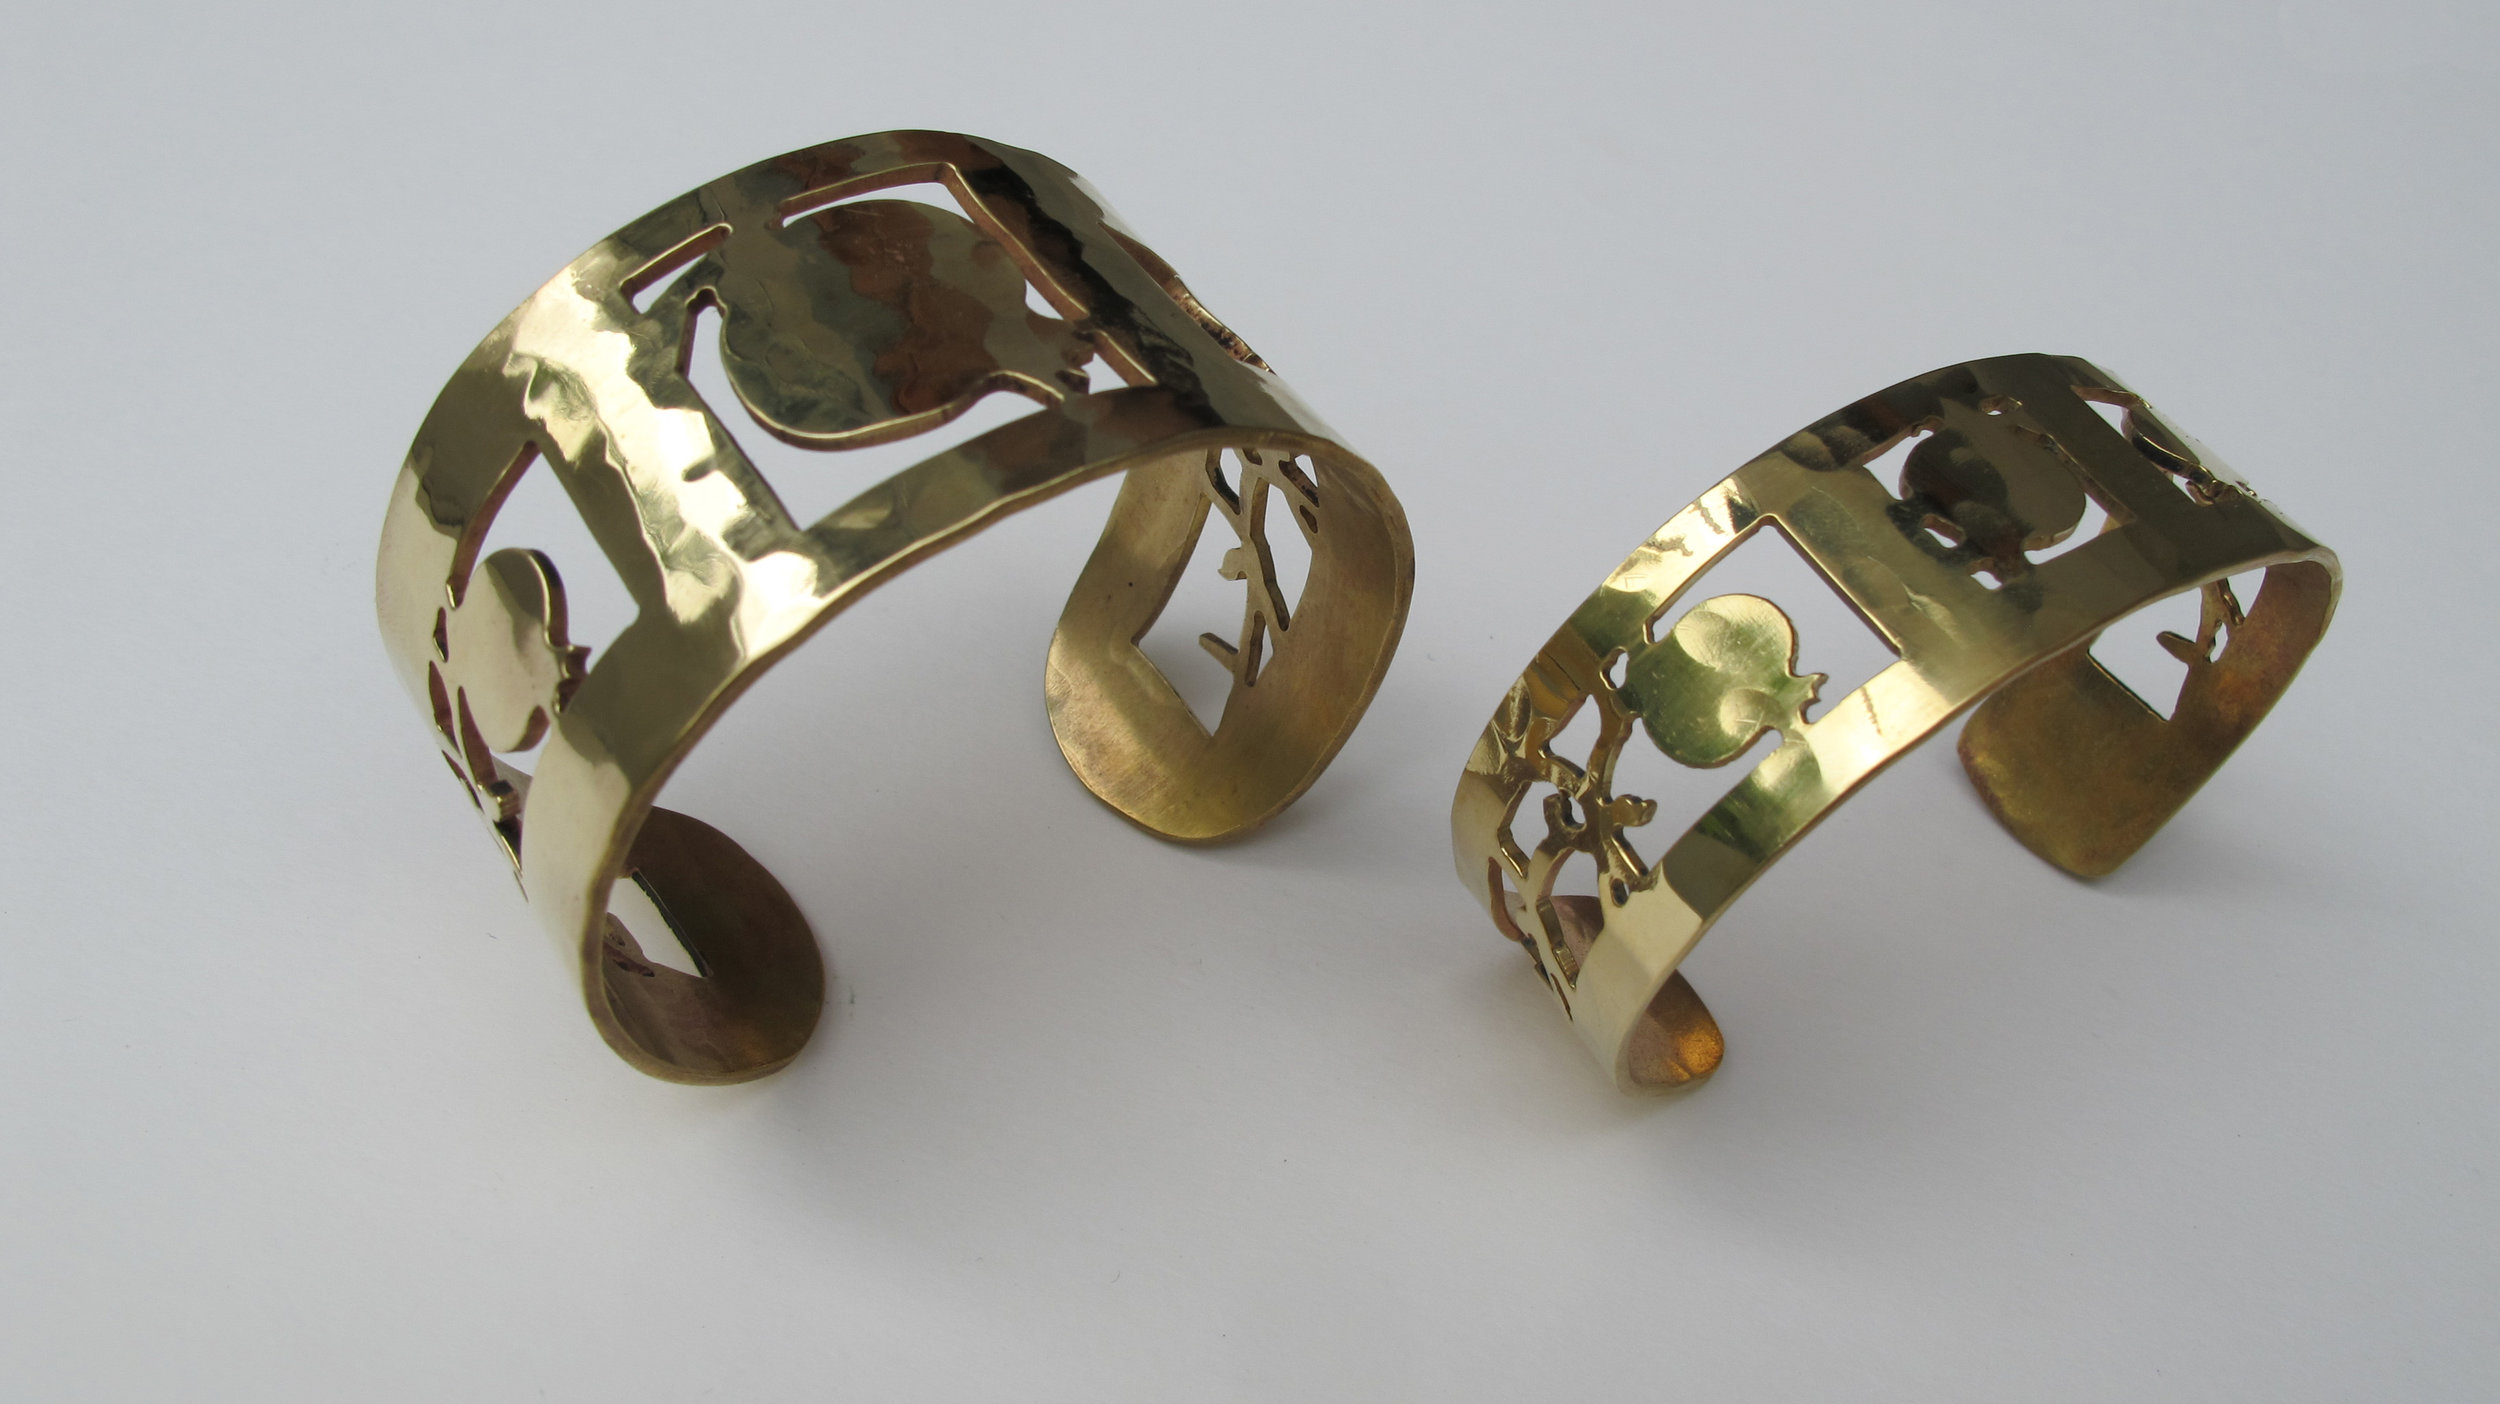 Pomegranate Cuff Judaic Jewelry